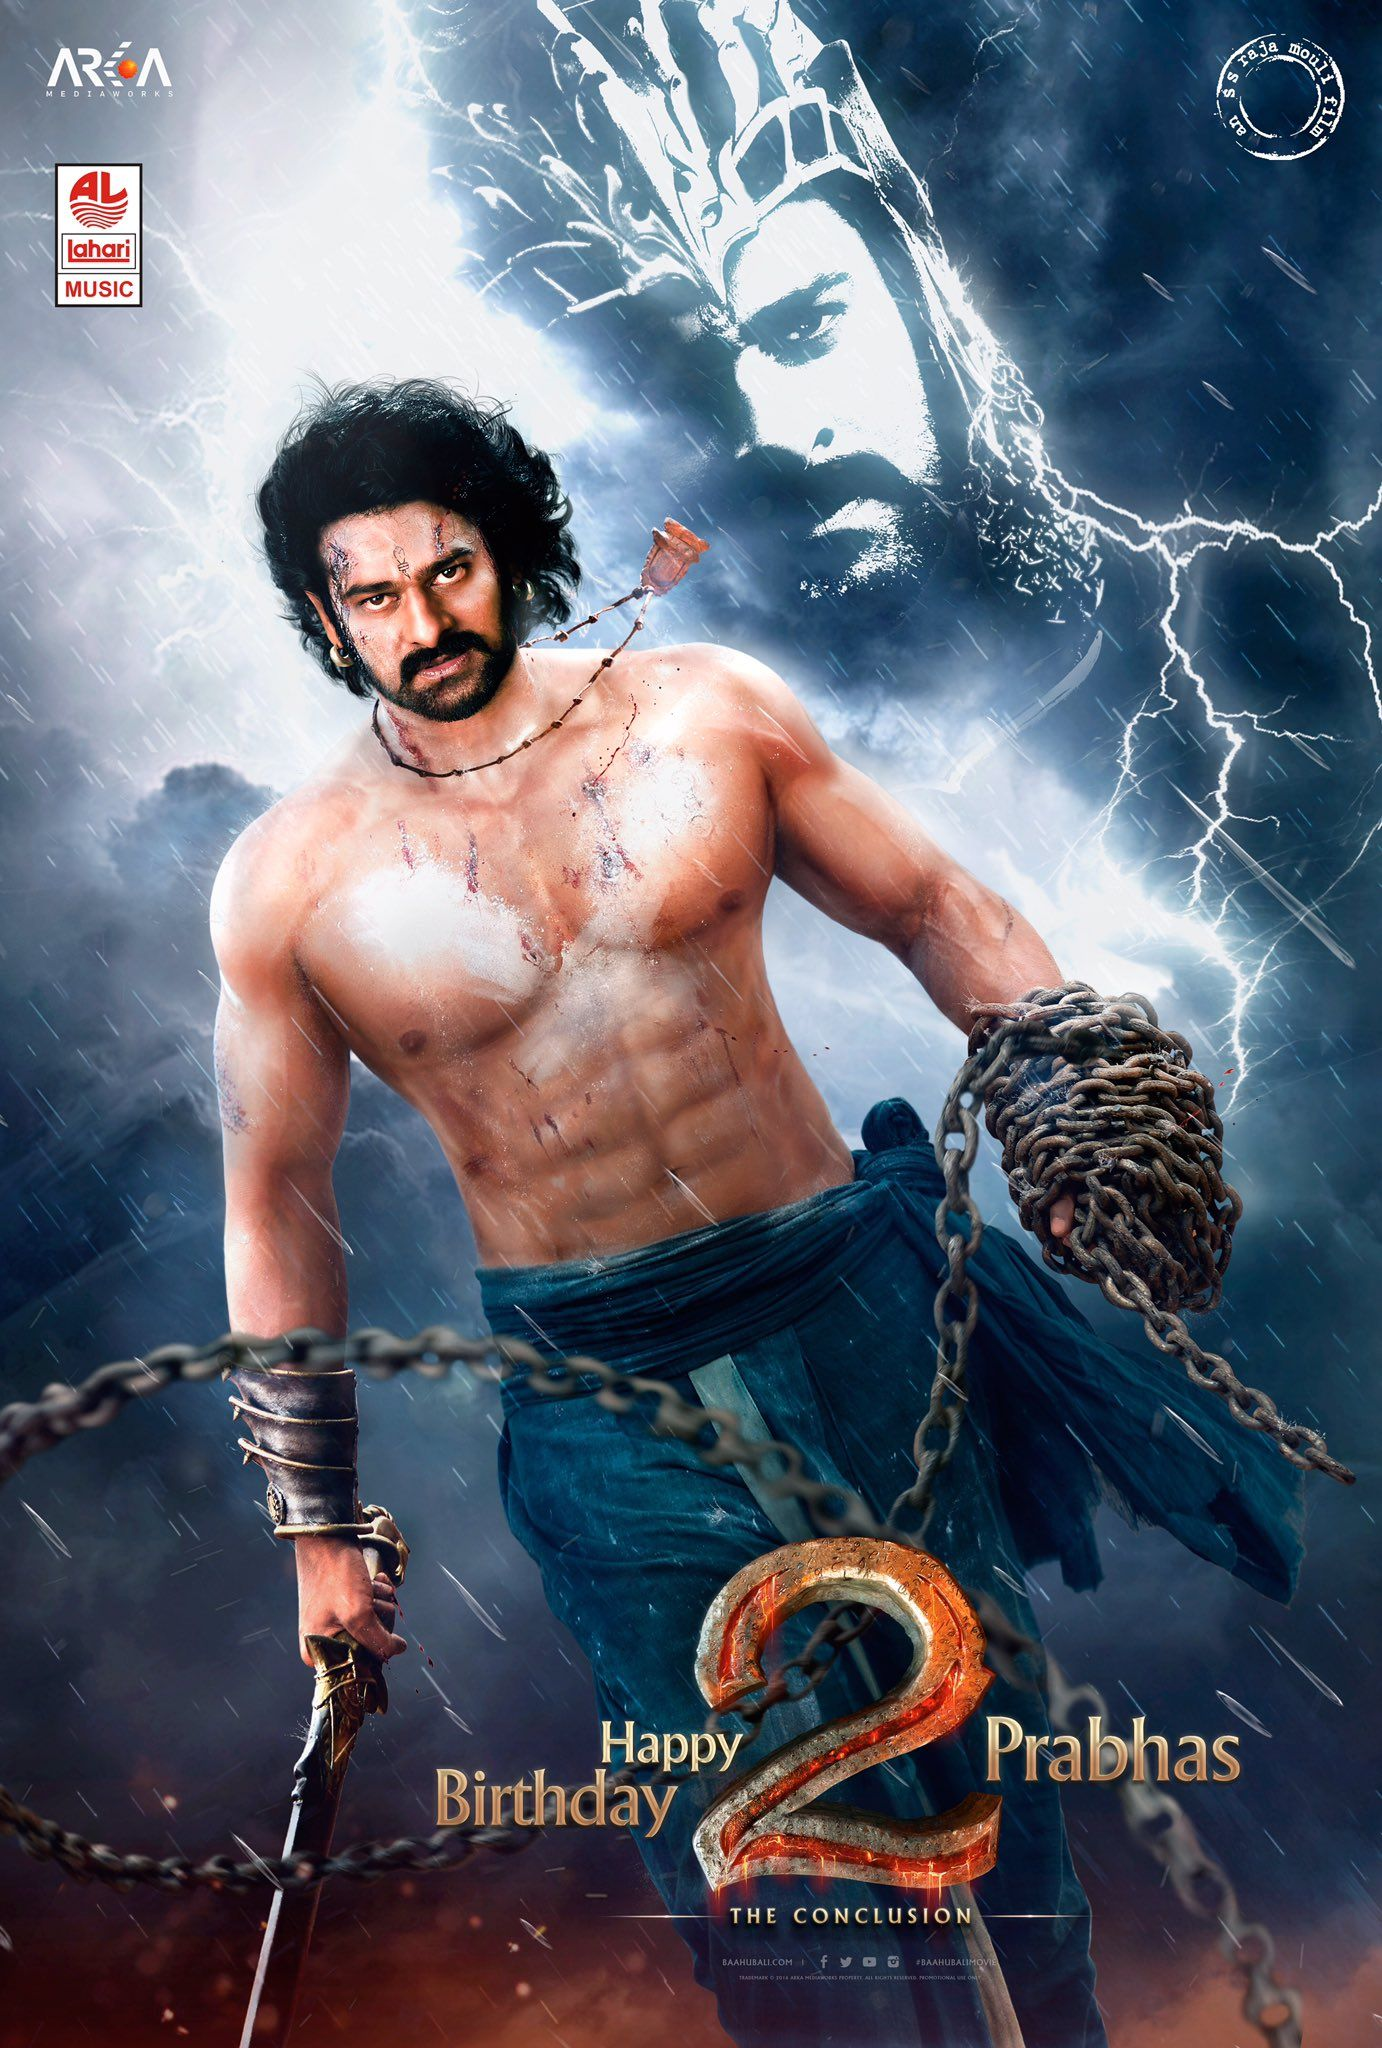 prabhas darling raju uppalapati telugu south indian hero #baahubali2